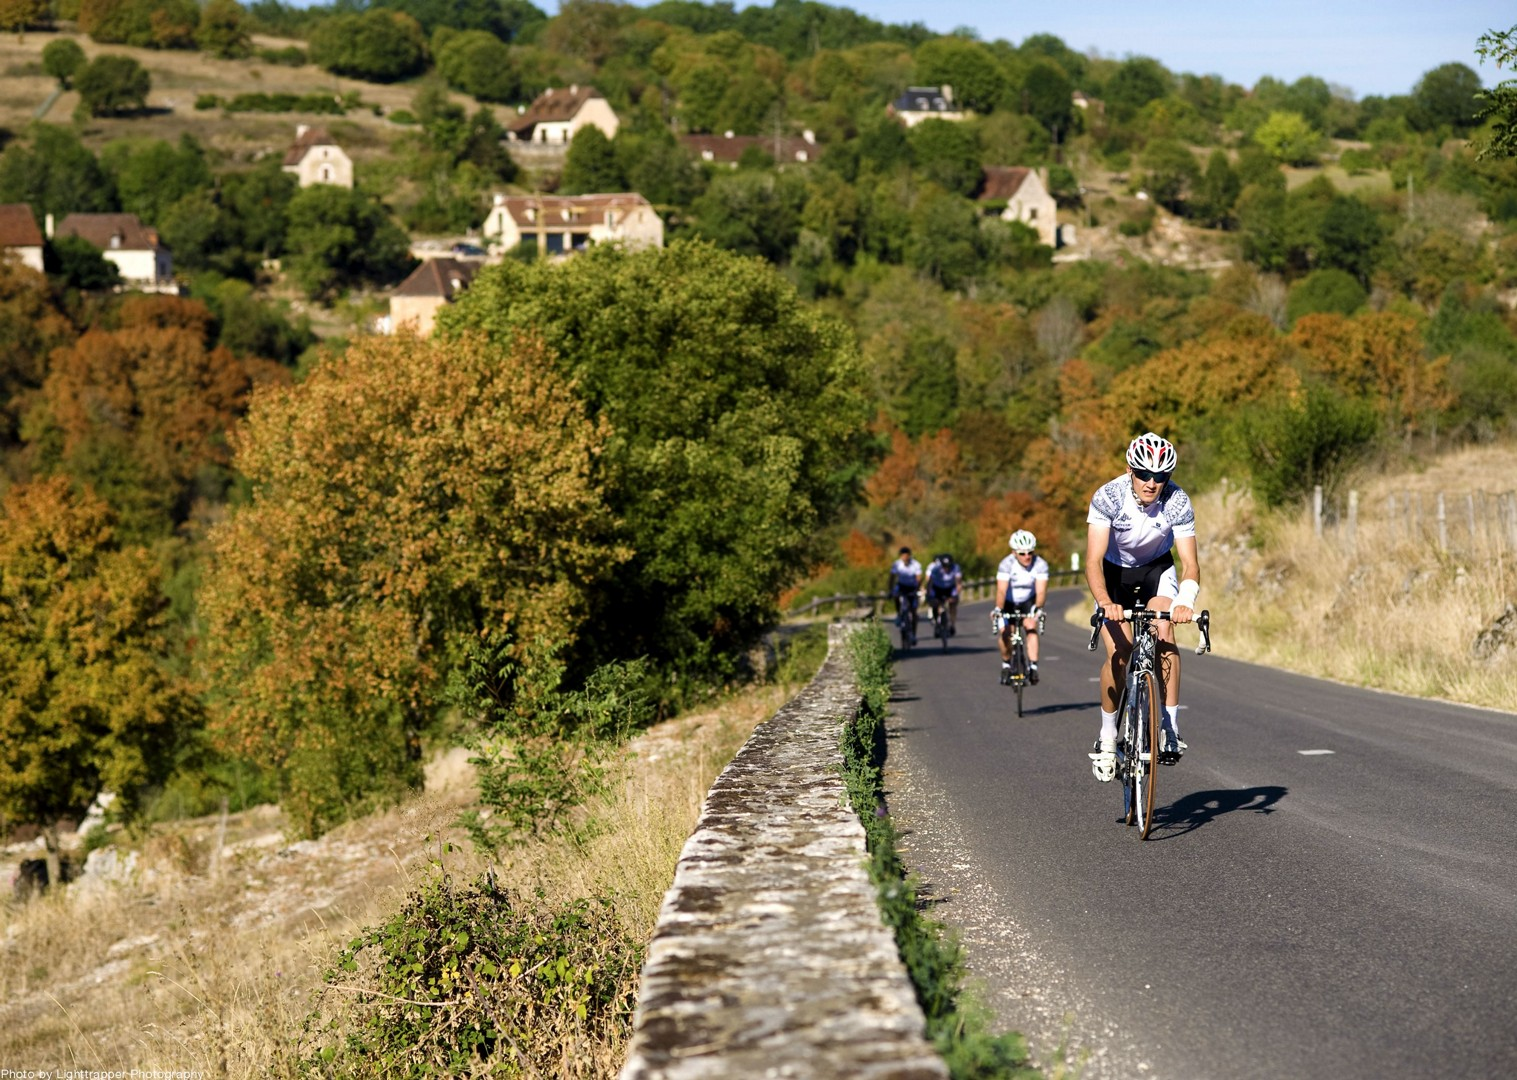 france-alsace-burgundy-beaujolais-road-holiday.jpg - NEW! France - Alsace, Burgundy and Beaujolais - Road Cycling